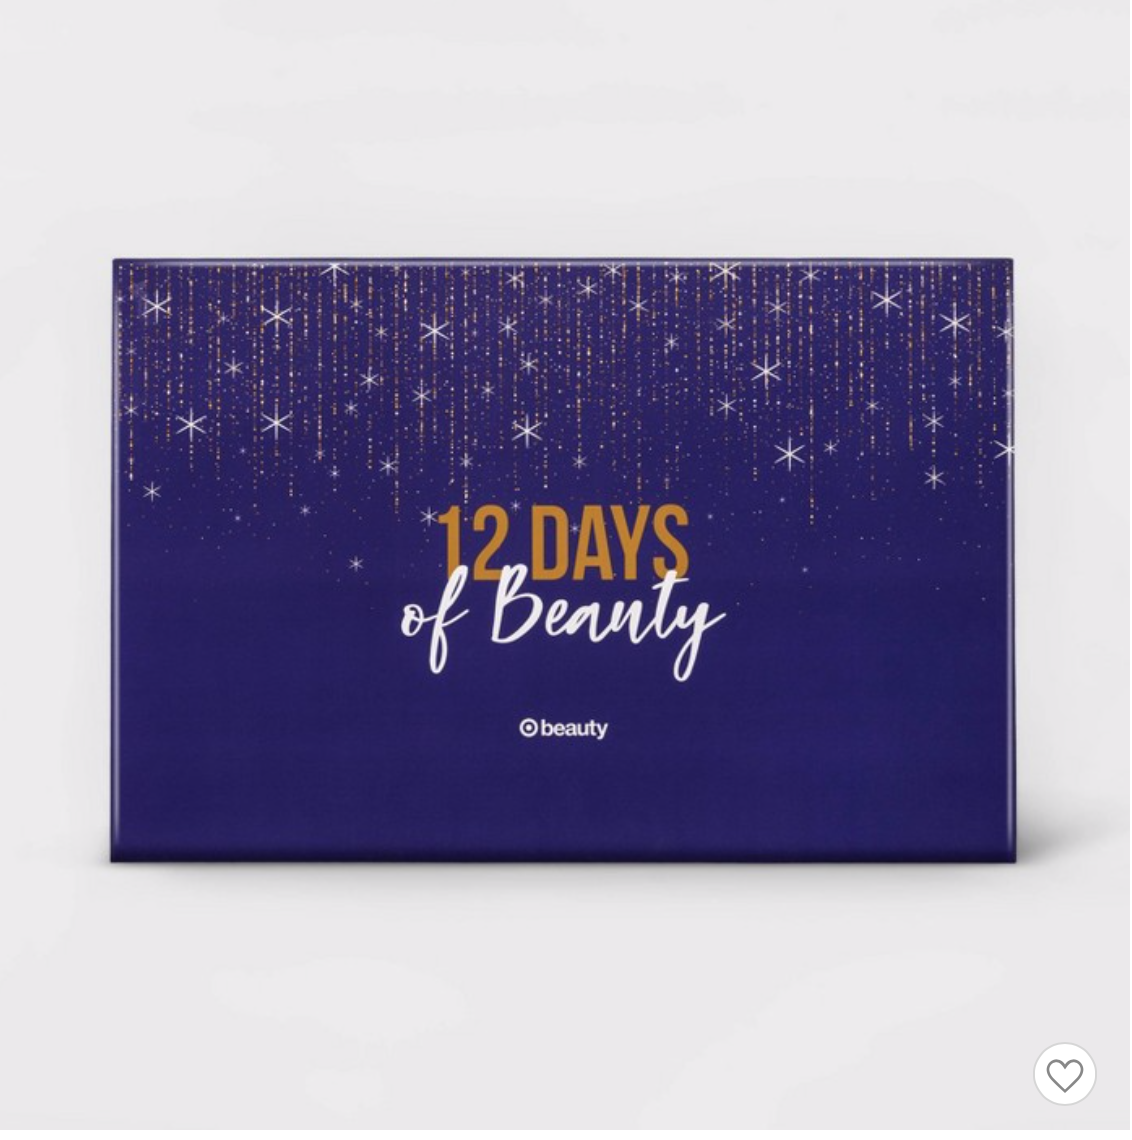 Target Beauty Box 12 Days of Beauty Advent Calendar – Now 30% Off!